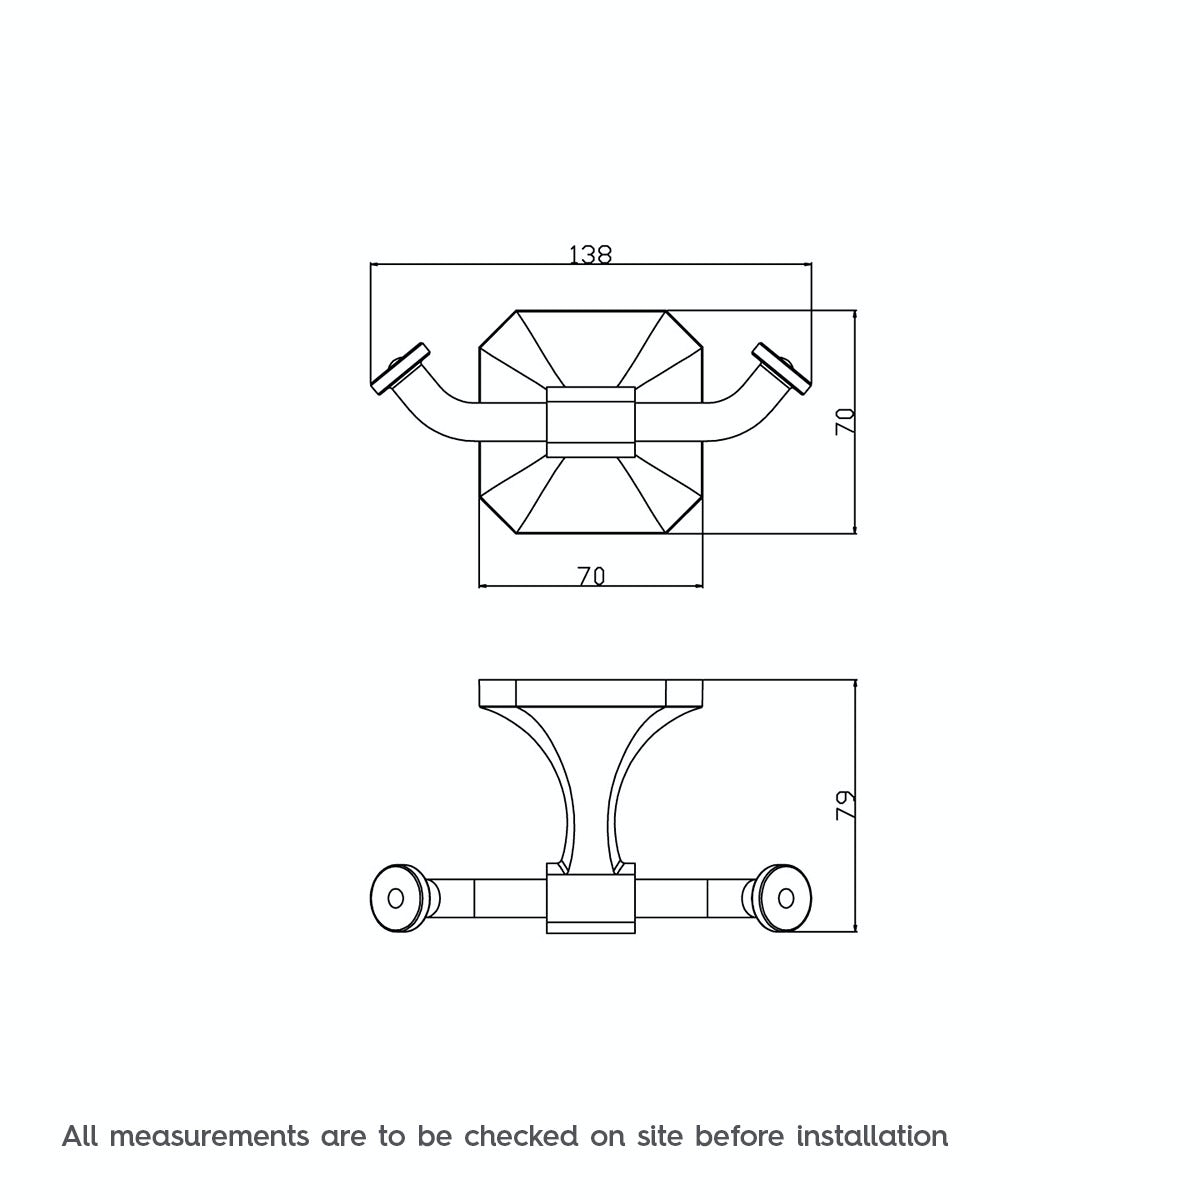 Dimensions for The Bath Co. Camberley double robe hook